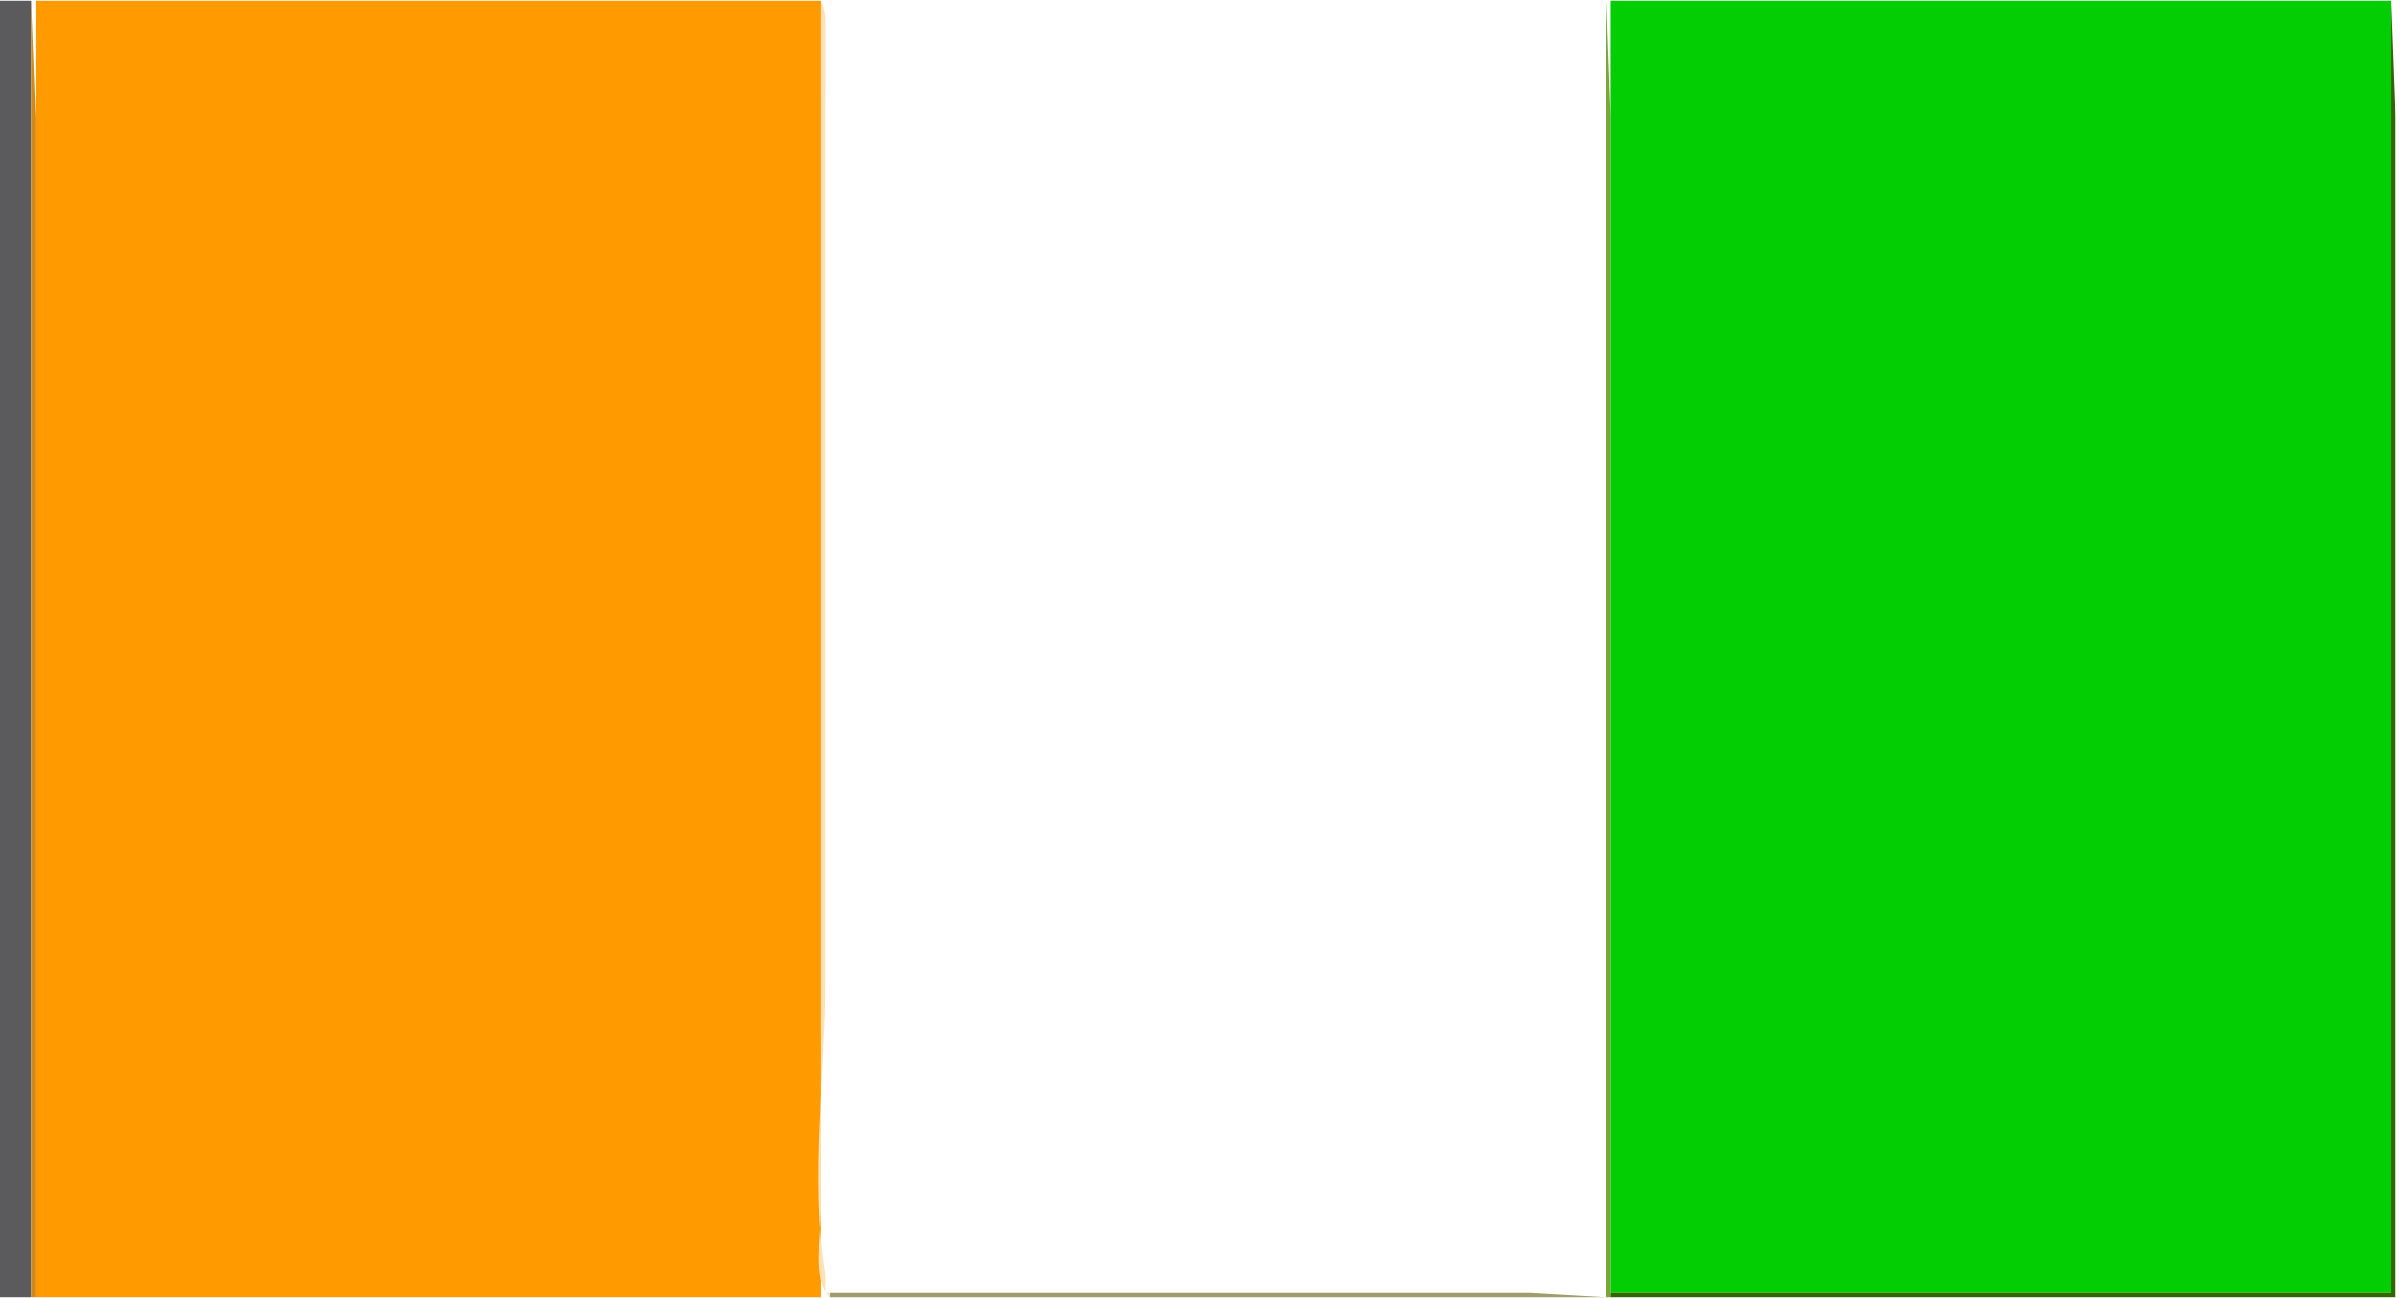 Flag of Cote dIvoire by Joesph